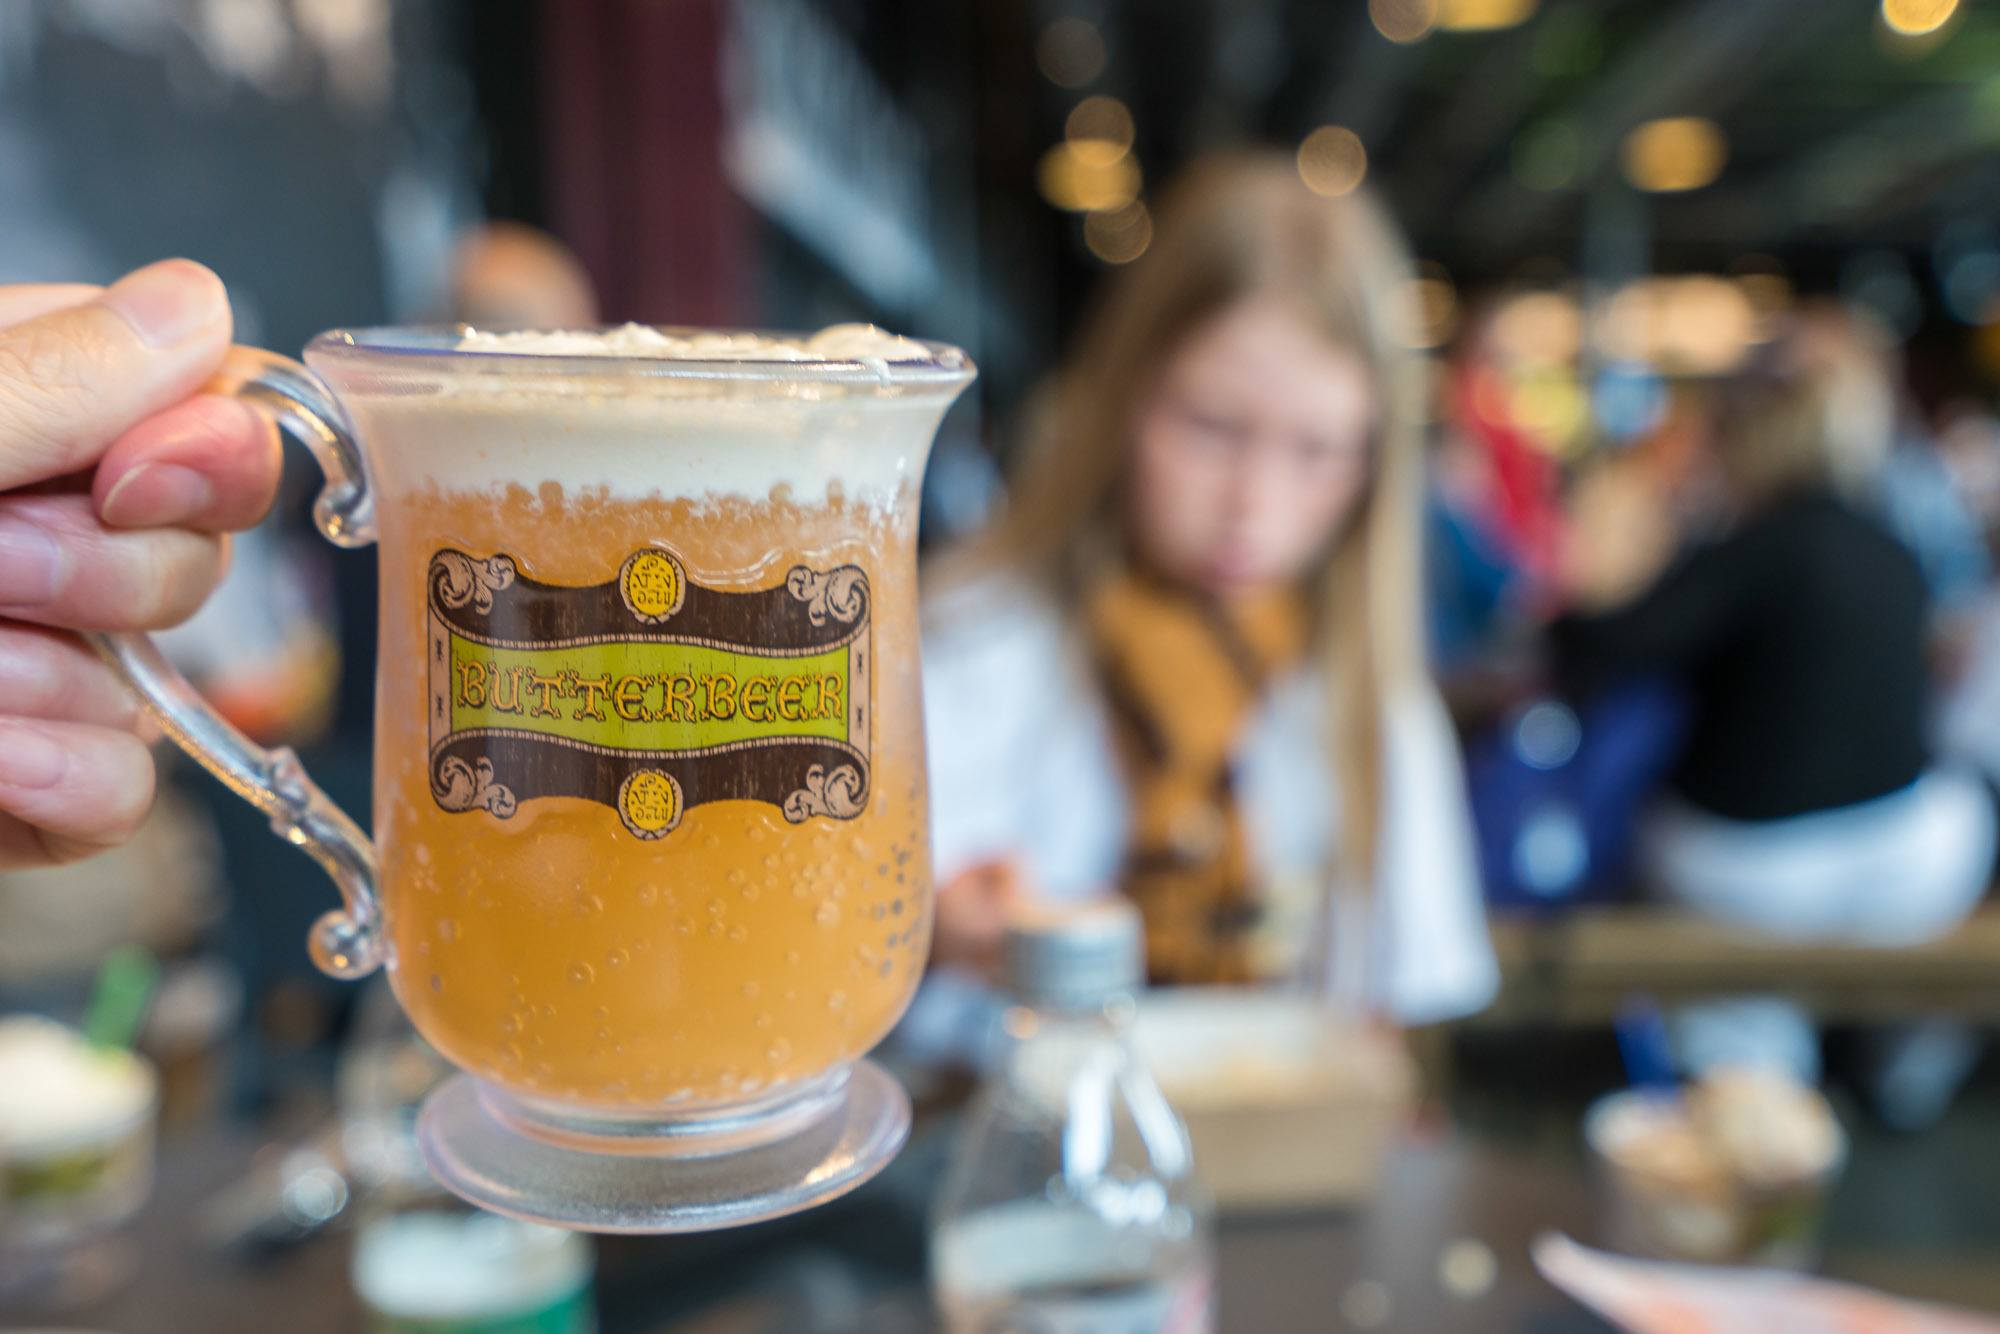 Butterbeer sold in a souvenir cup at Warner Bros. Studio Tour London.